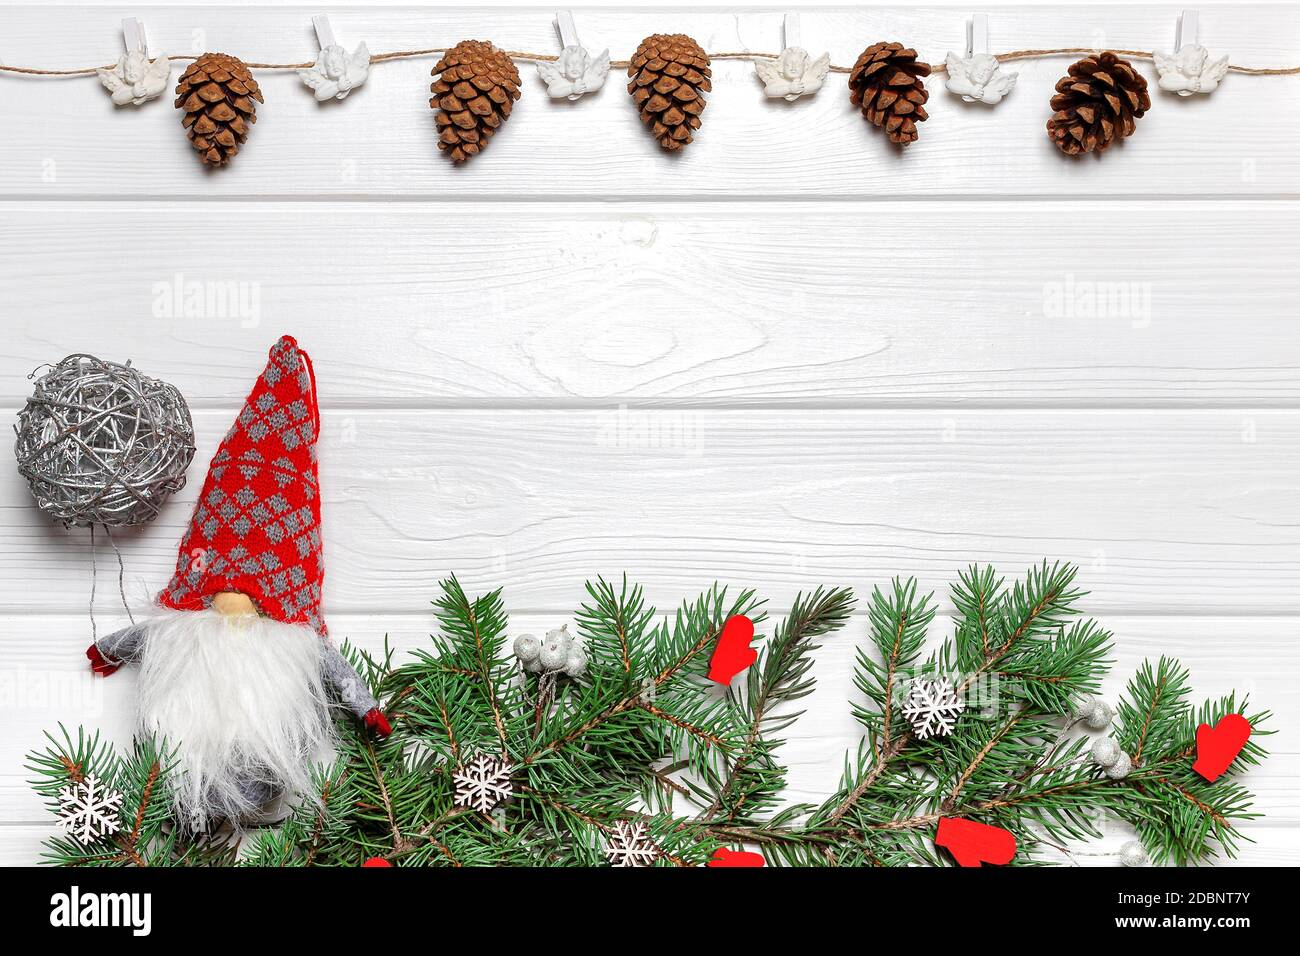 New Year Gnome With Silver Ball Pine Branches With Mitten And Snowflake Ornaments Garland With Cones And Angels Poster Template Copy Space Stock Photo Alamy